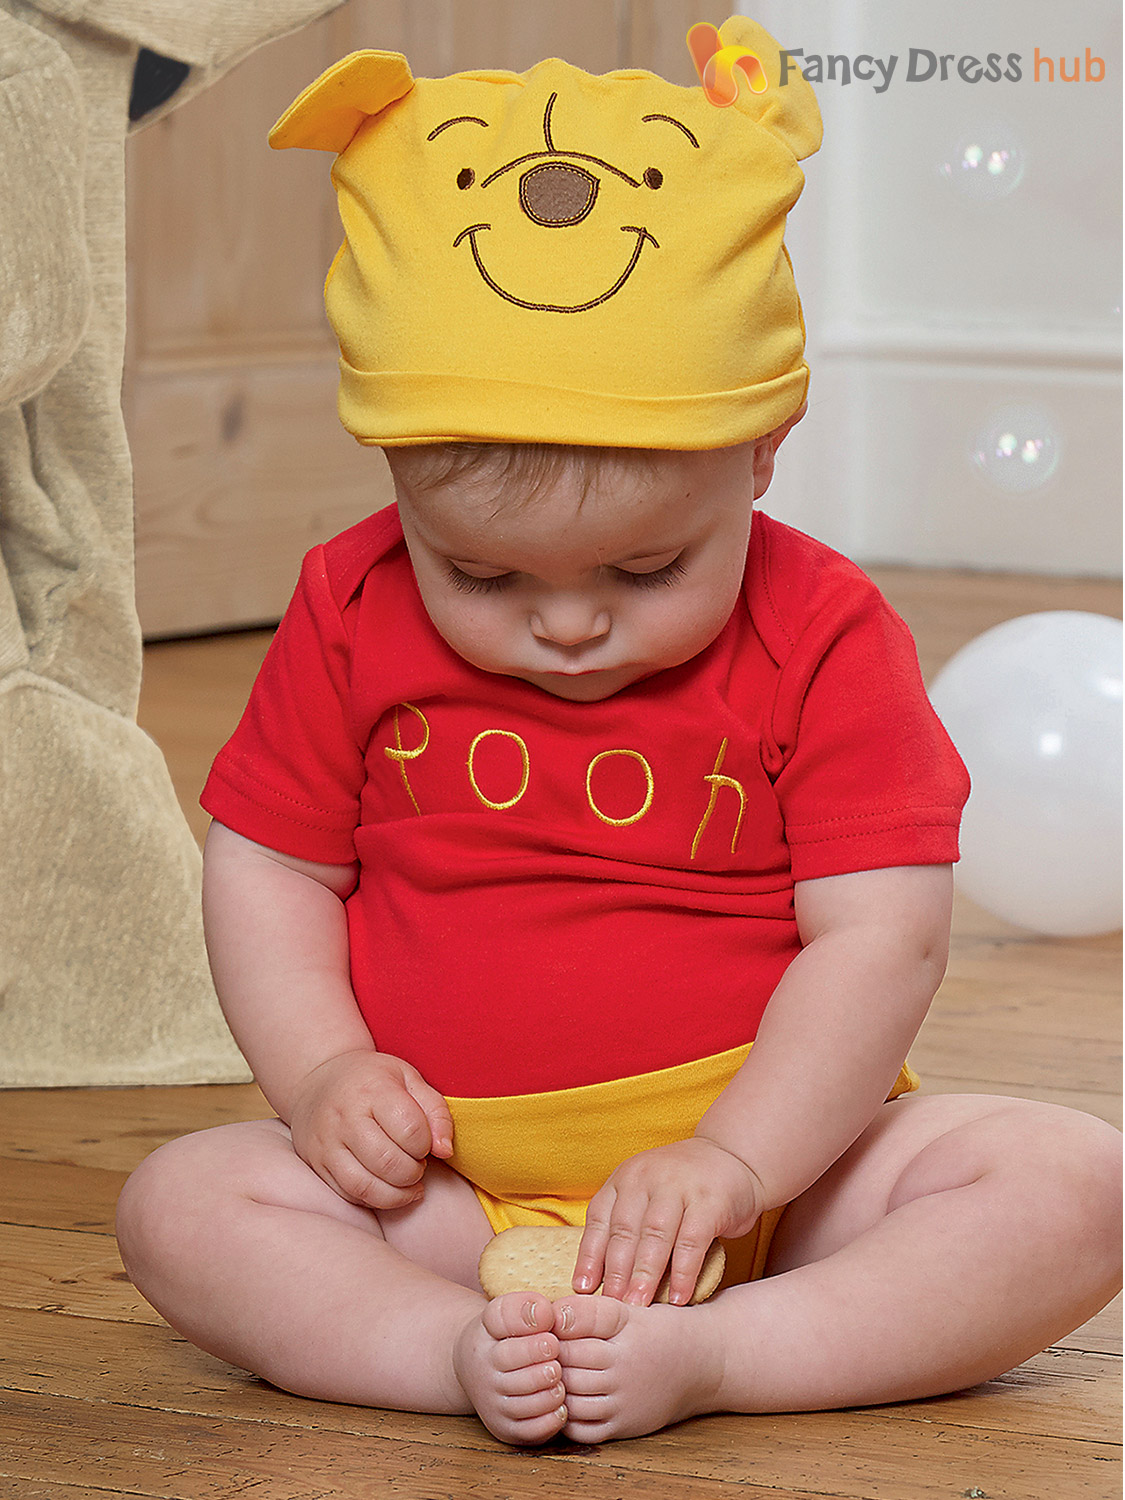 Disney-Baby-Winnie-the-Pooh-Bodysuit-Hood-Outfit-Toddler-Fancy-Dress-Costume thumbnail 9